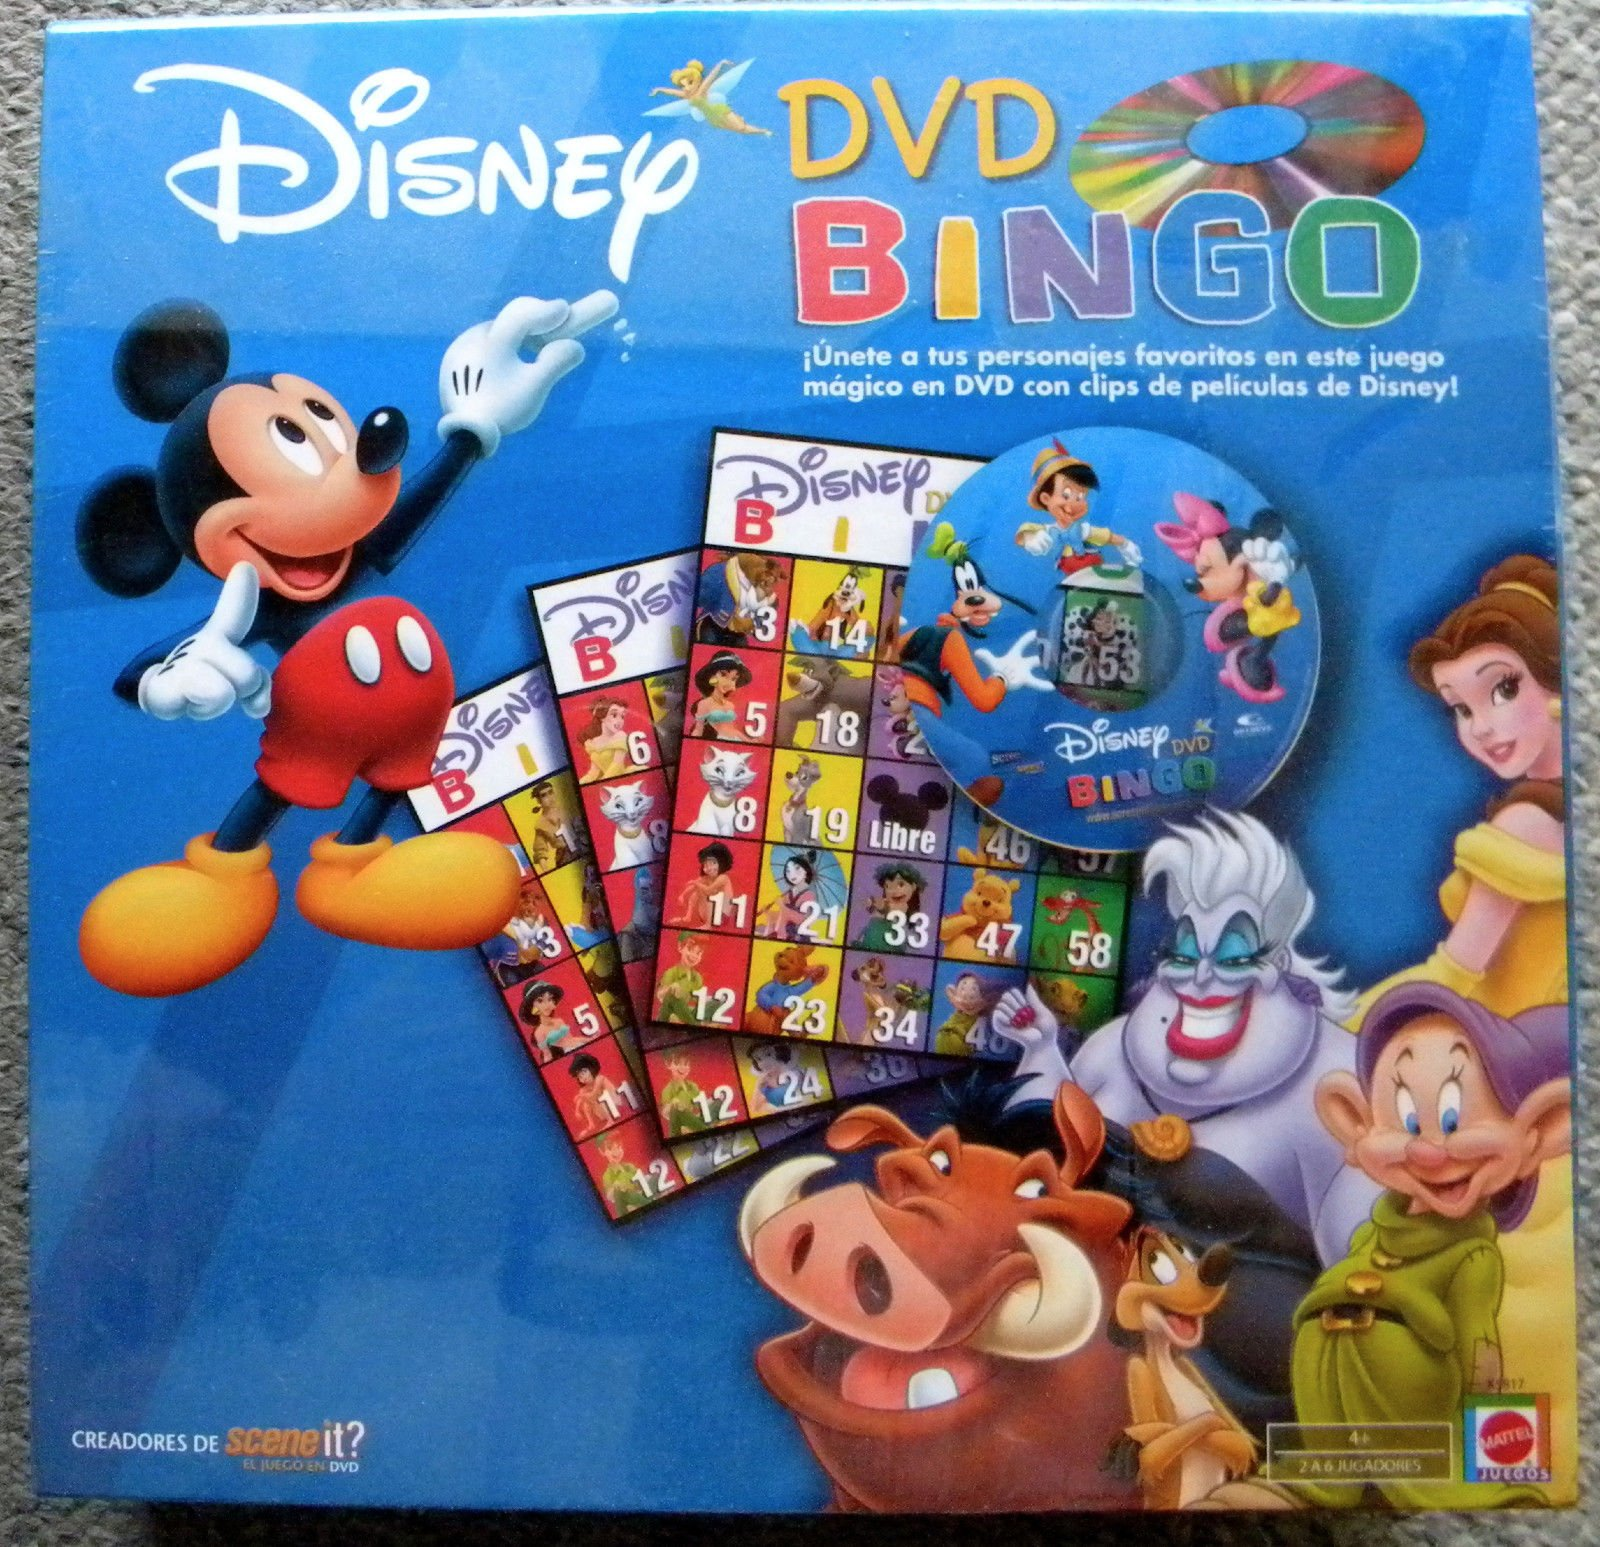 image regarding Disney Bingo Printable known as Affordable Dvd Bingo, uncover Dvd Bingo bargains upon line at